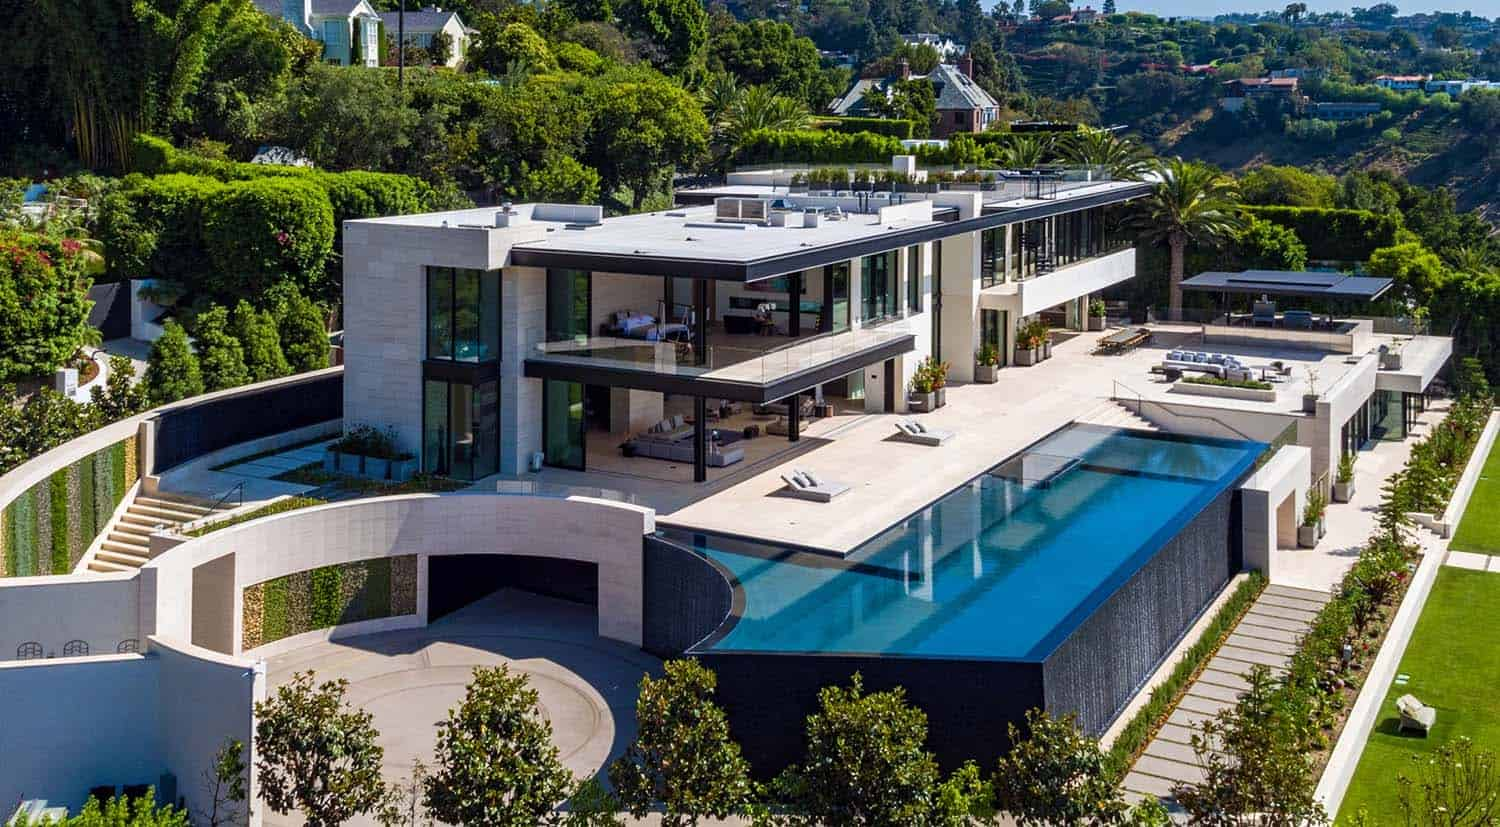 The Most Expensive House to Rent - $1.5 Million Dollars per month